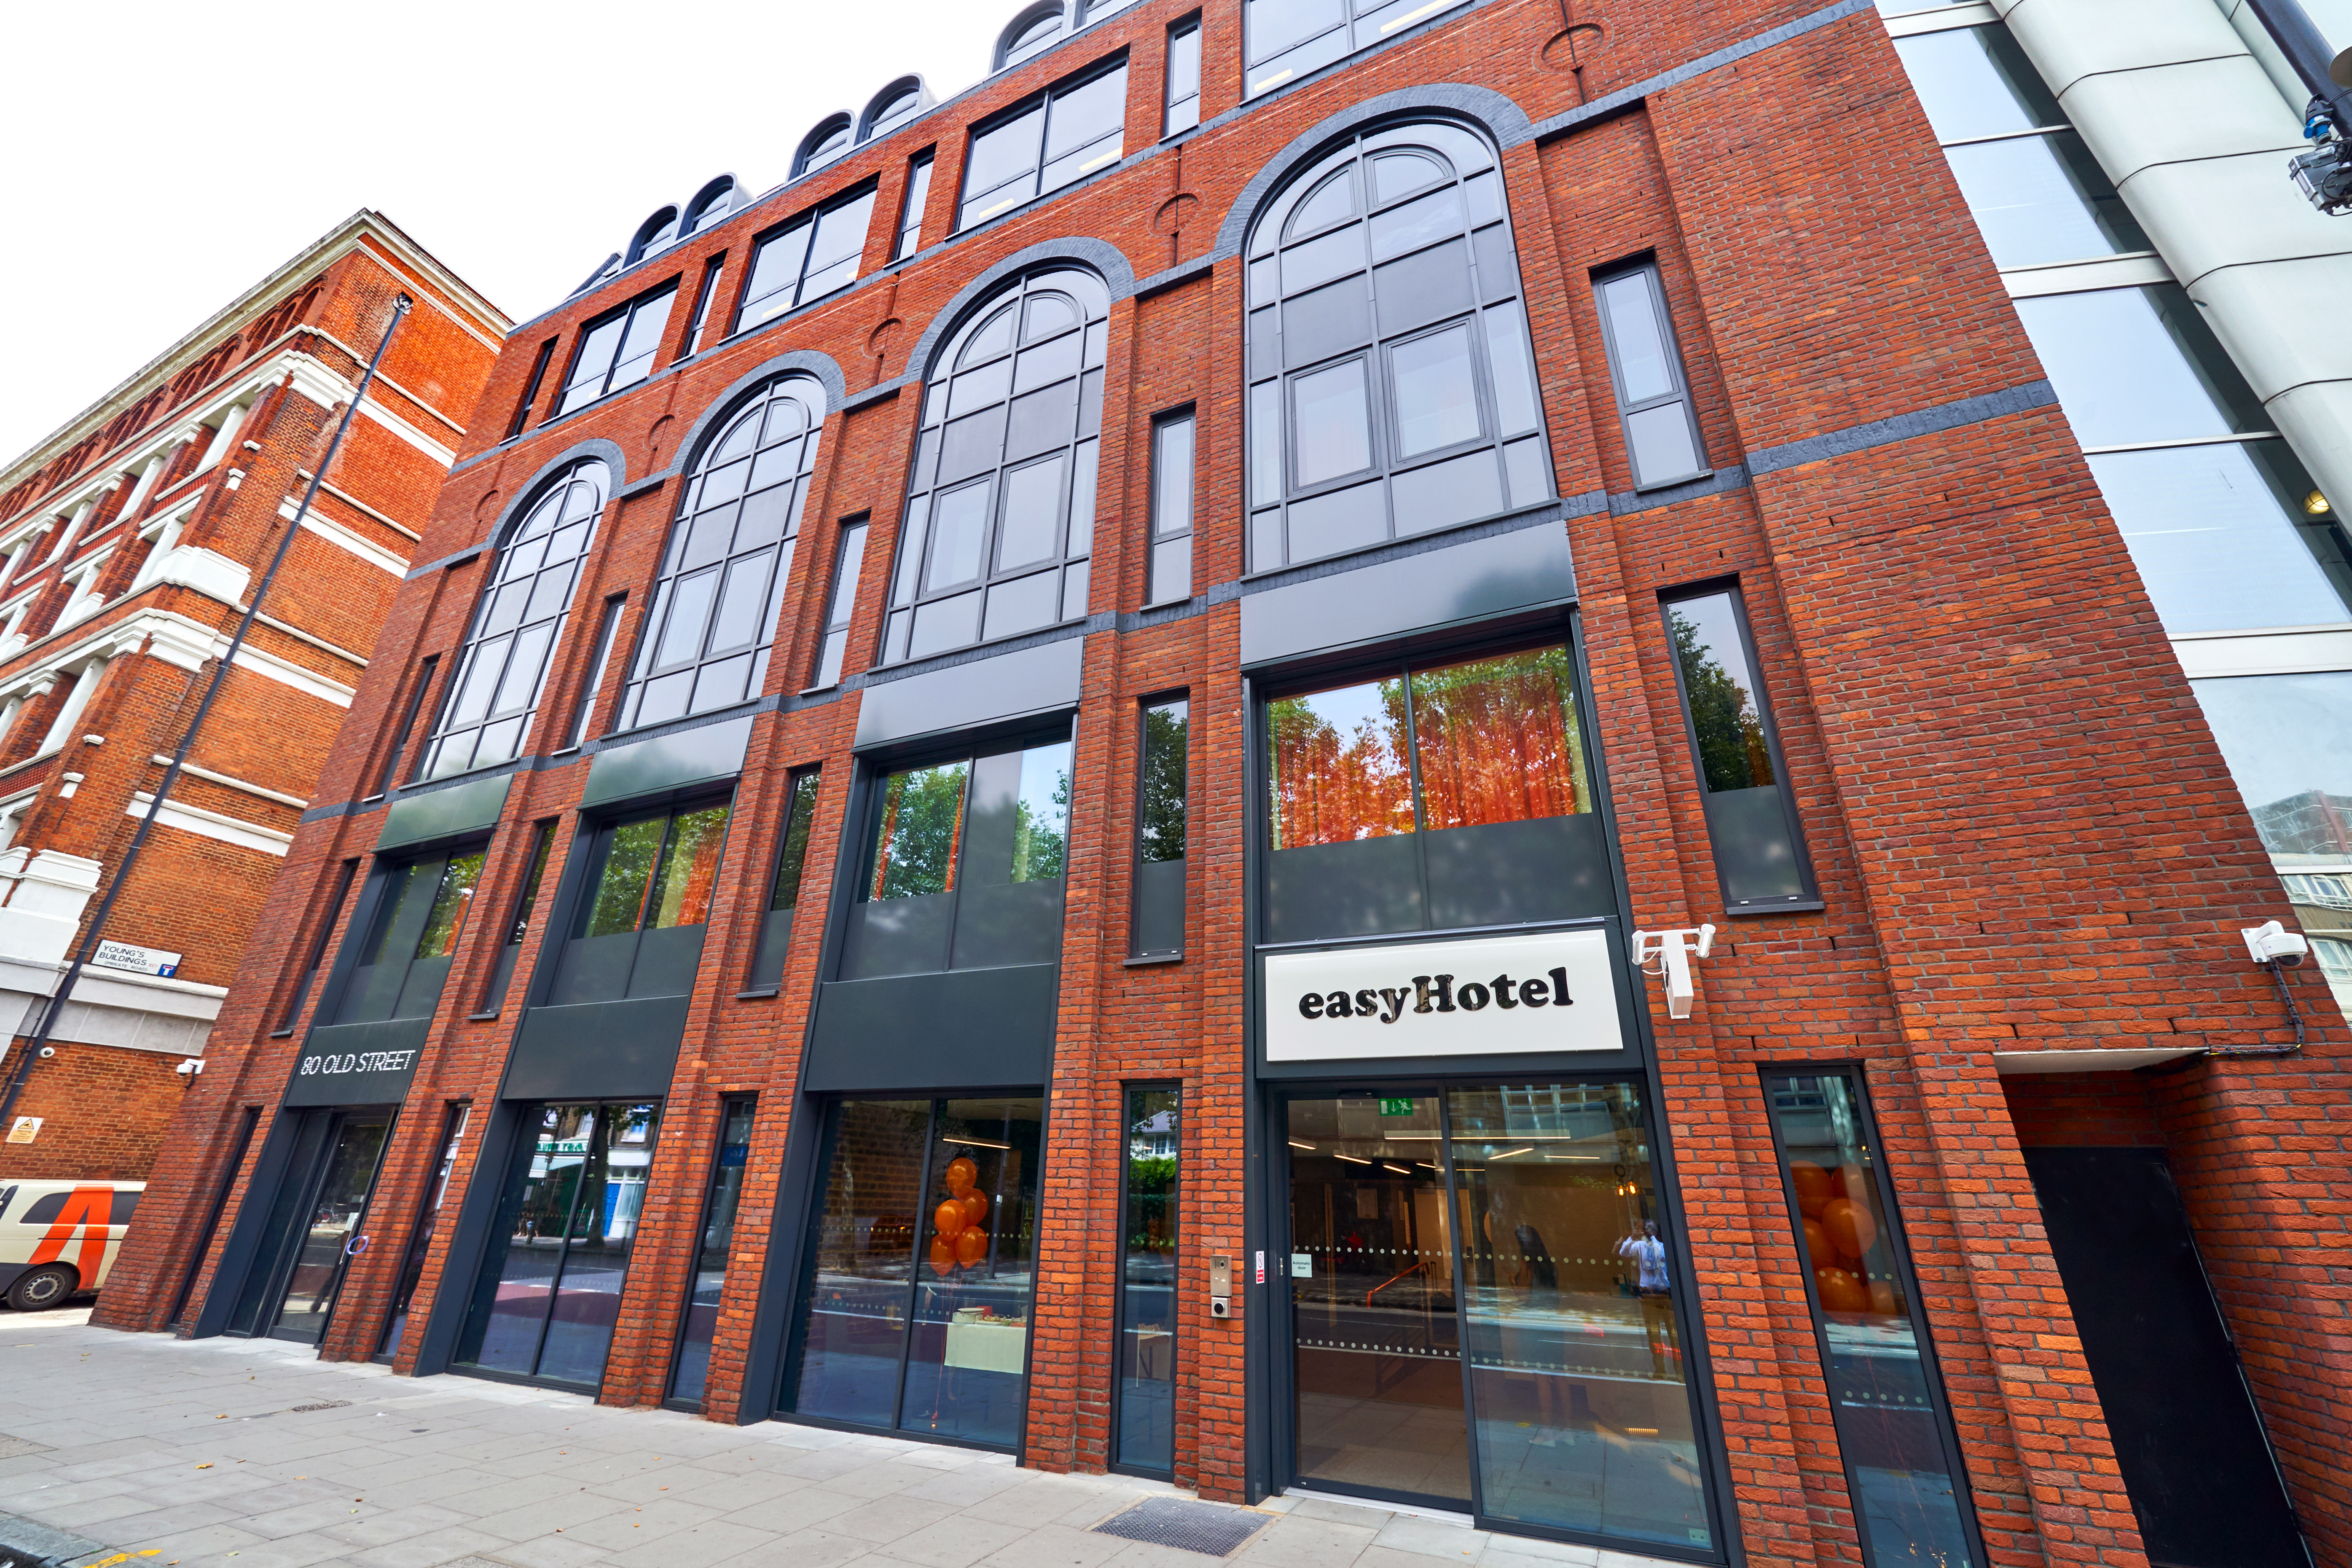 Easyhotel Sheffield Book Cheap Sheffield Hotels Easyhotel